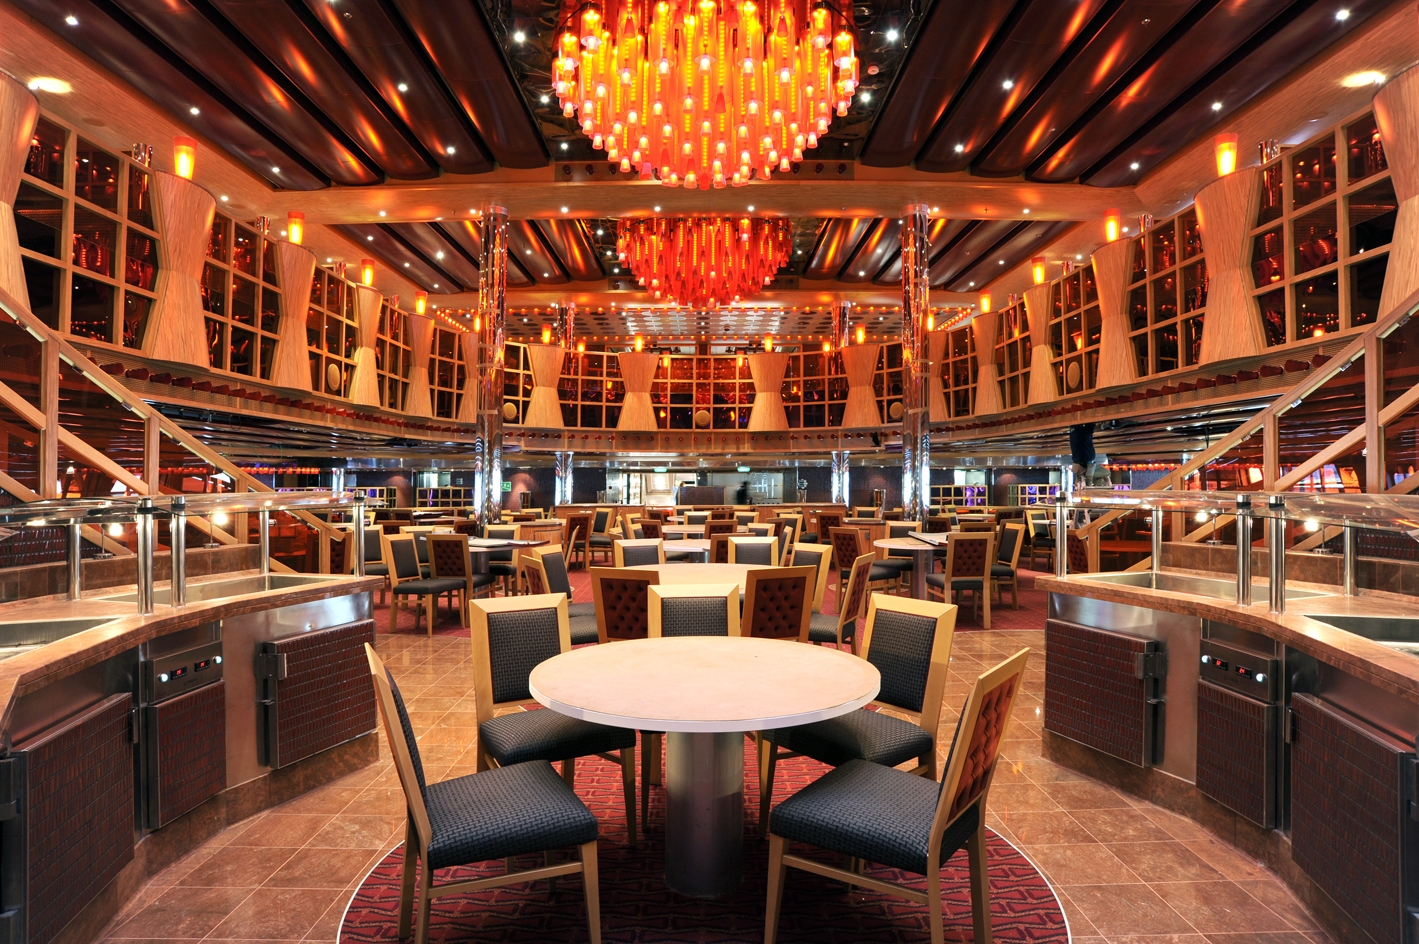 carnival_dream_dining_room.jpg